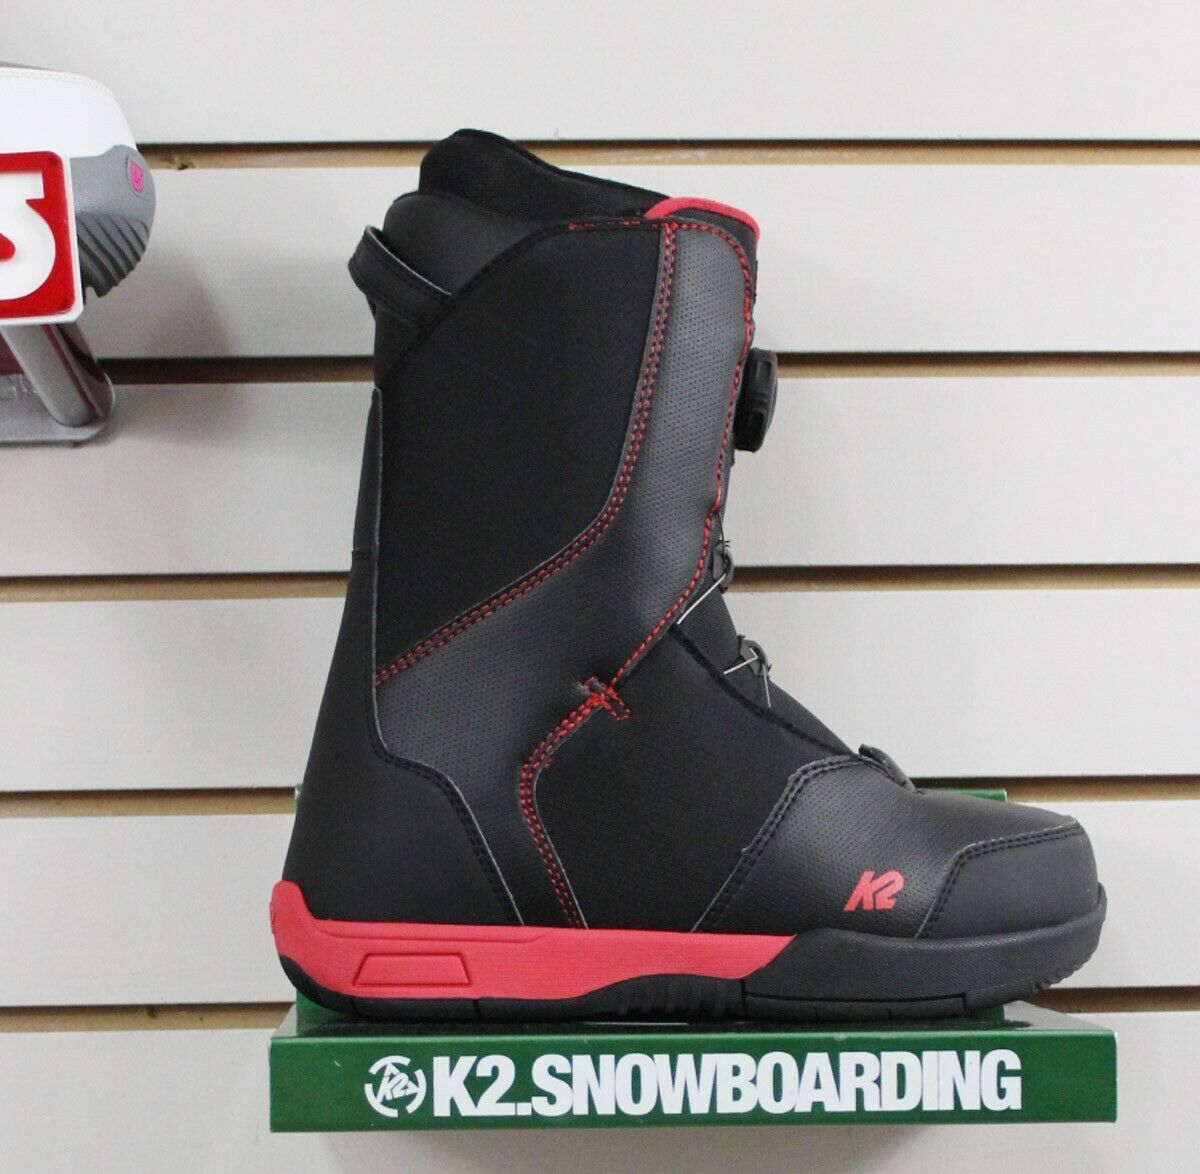 New 2019 K2 Vandal Snowboard Boots Mens Size 5 Black Youth B